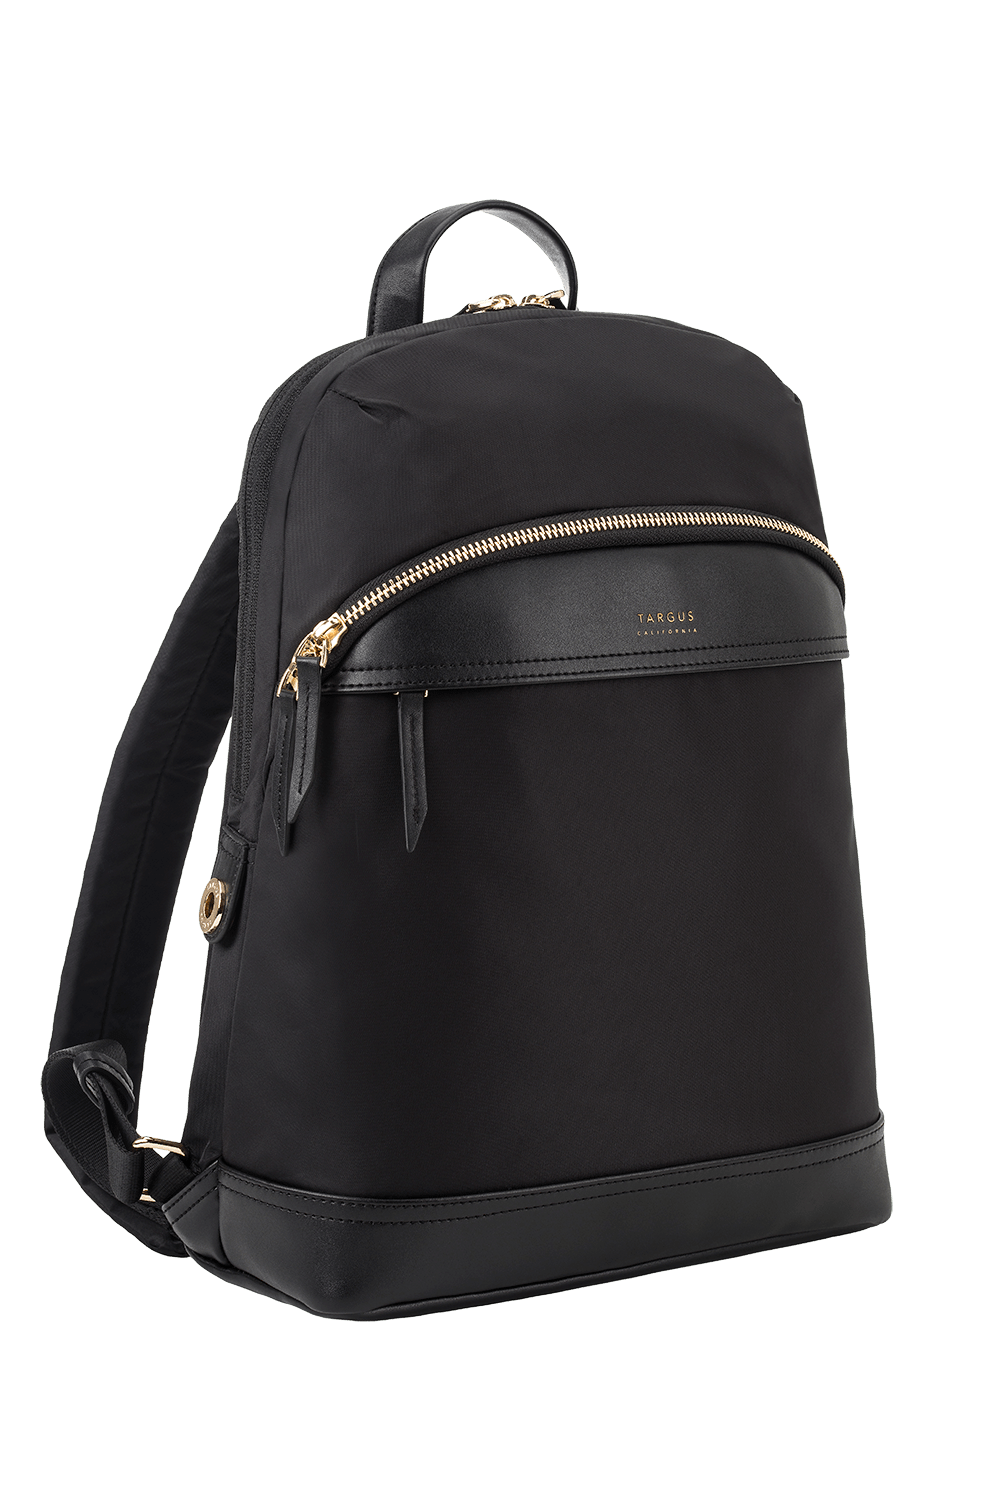 0003135_targus-12-newport-mini-backpack-tsb946ap.png